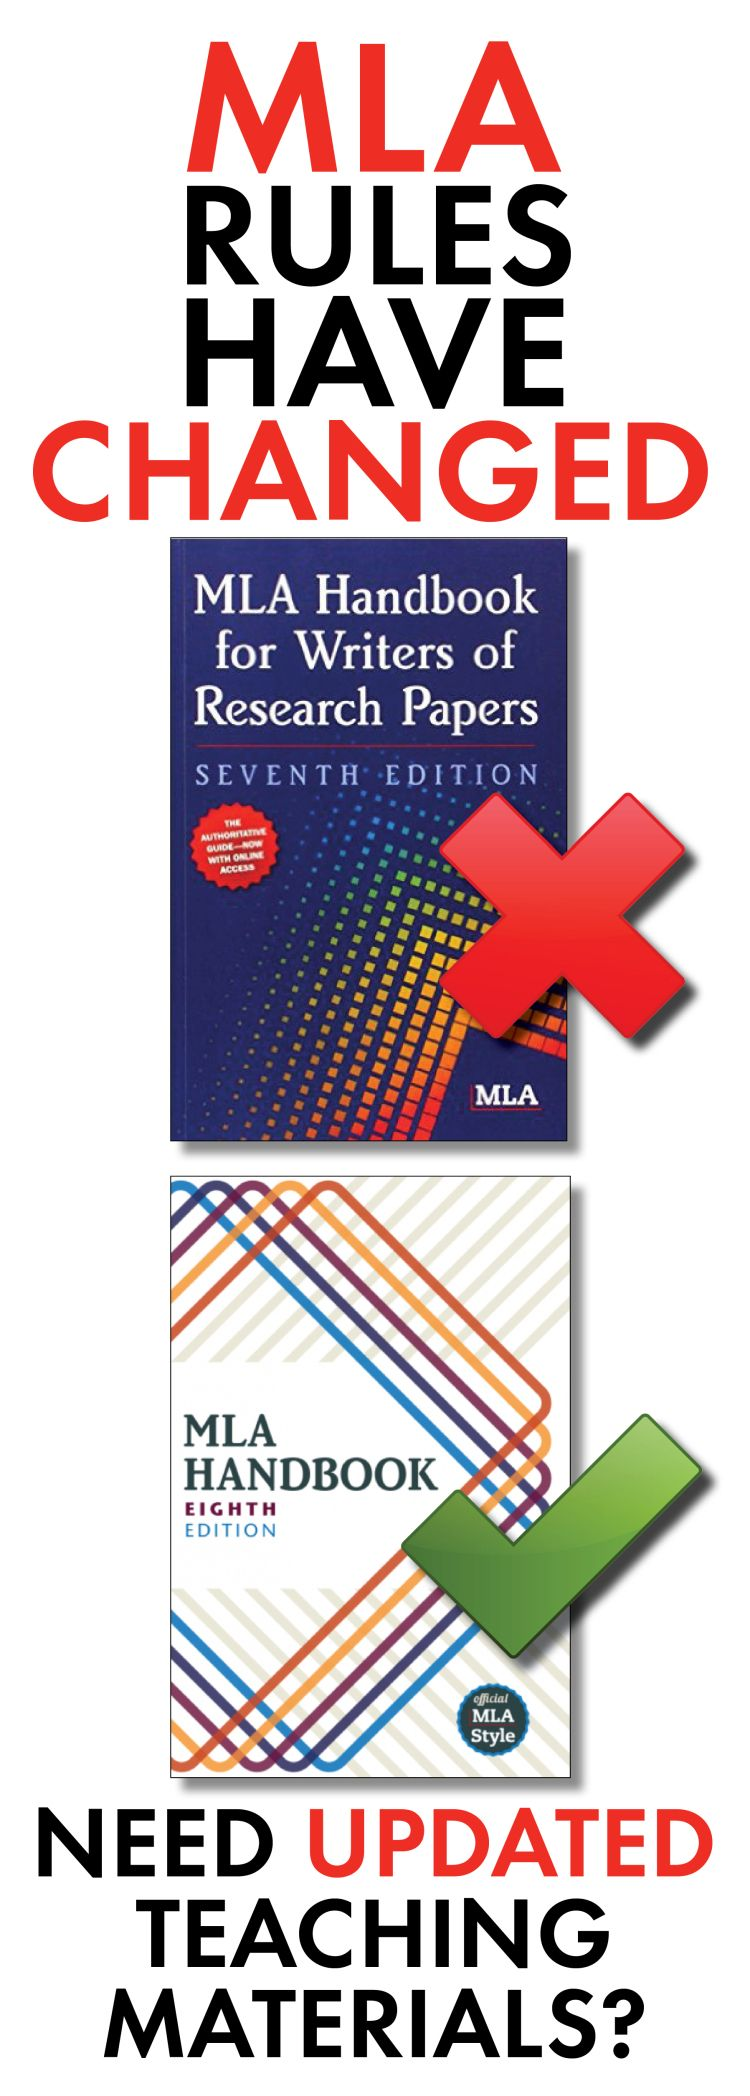 014 Mla Handbook For Writers Of Researchs 8th Edition Unique Research Papers Pdf Free Download Full